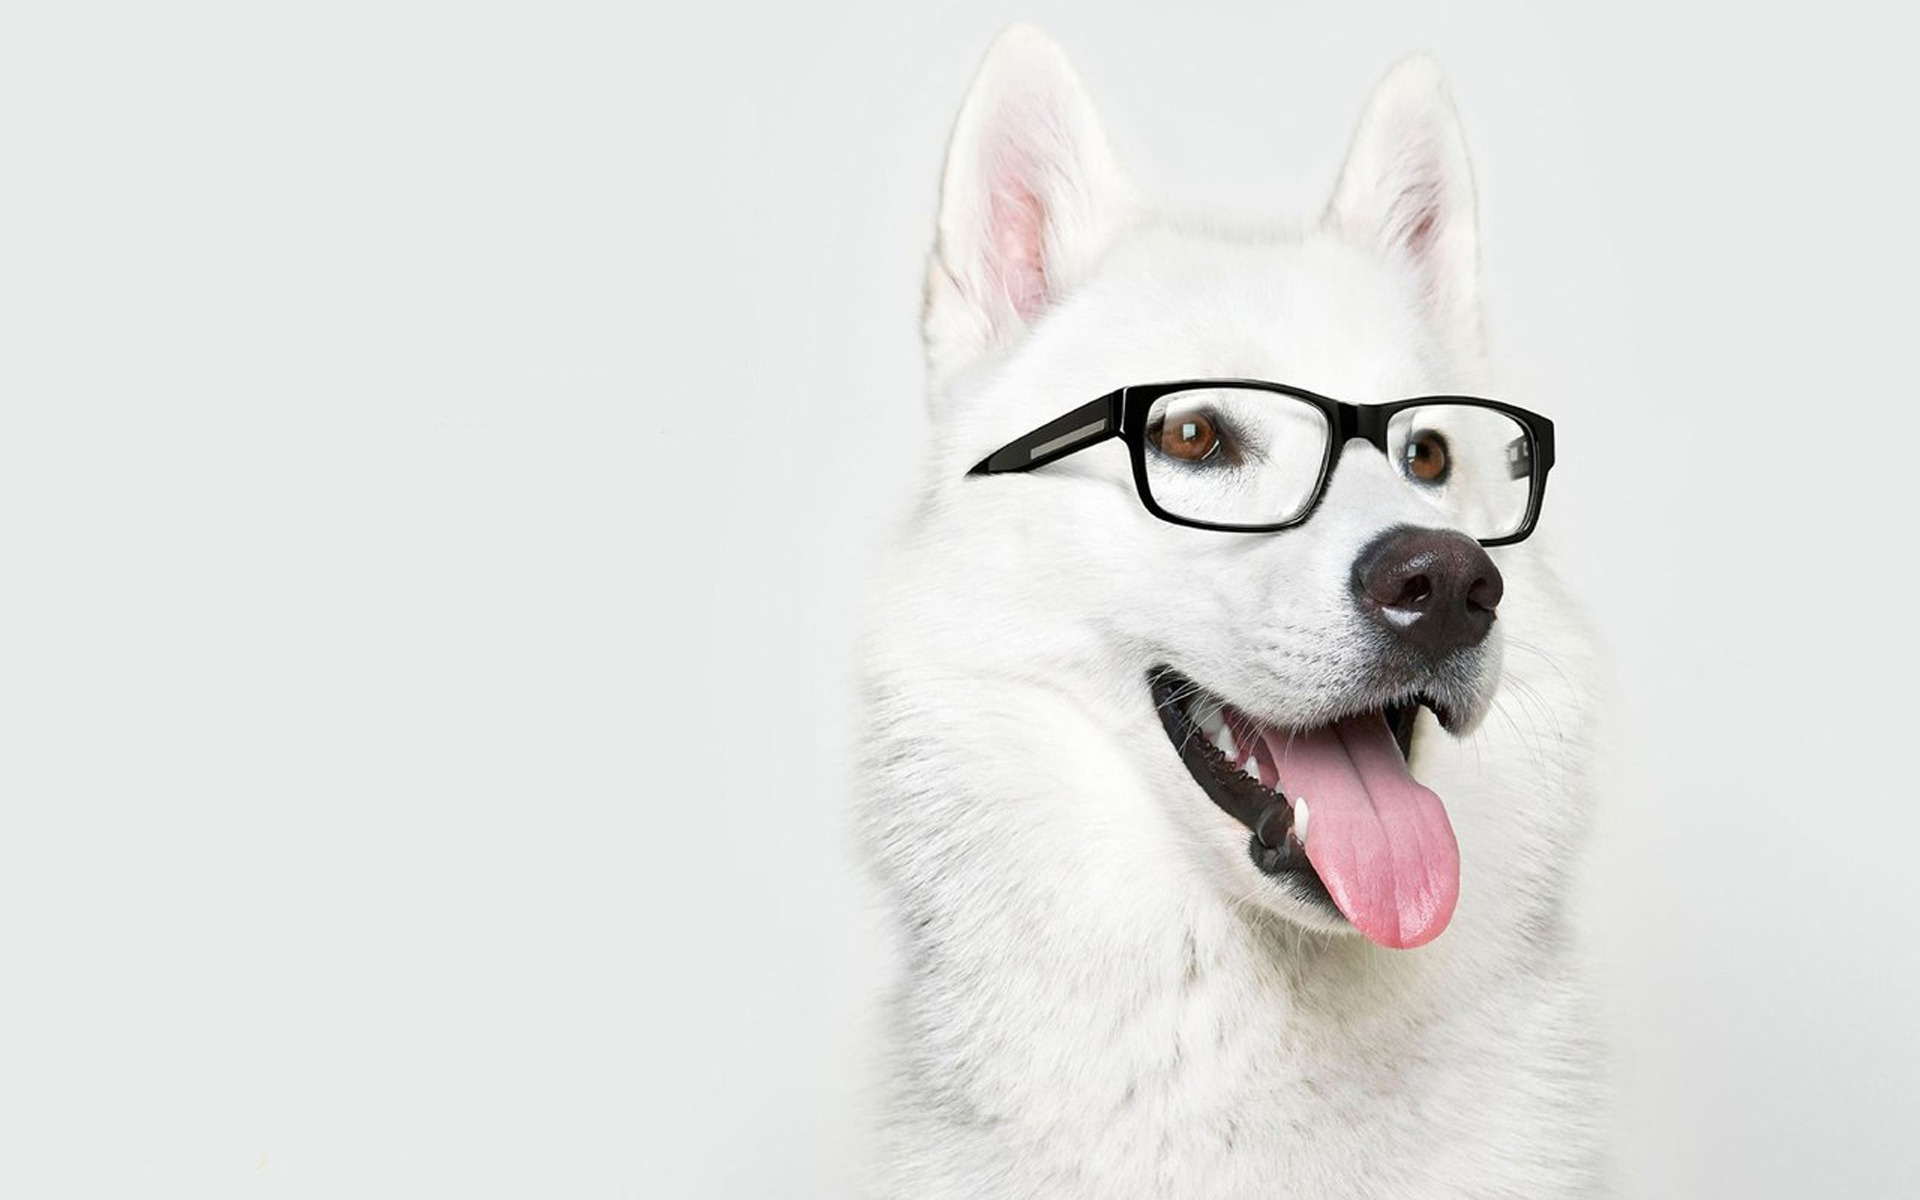 awesome dog with glasses wallpaper 40031